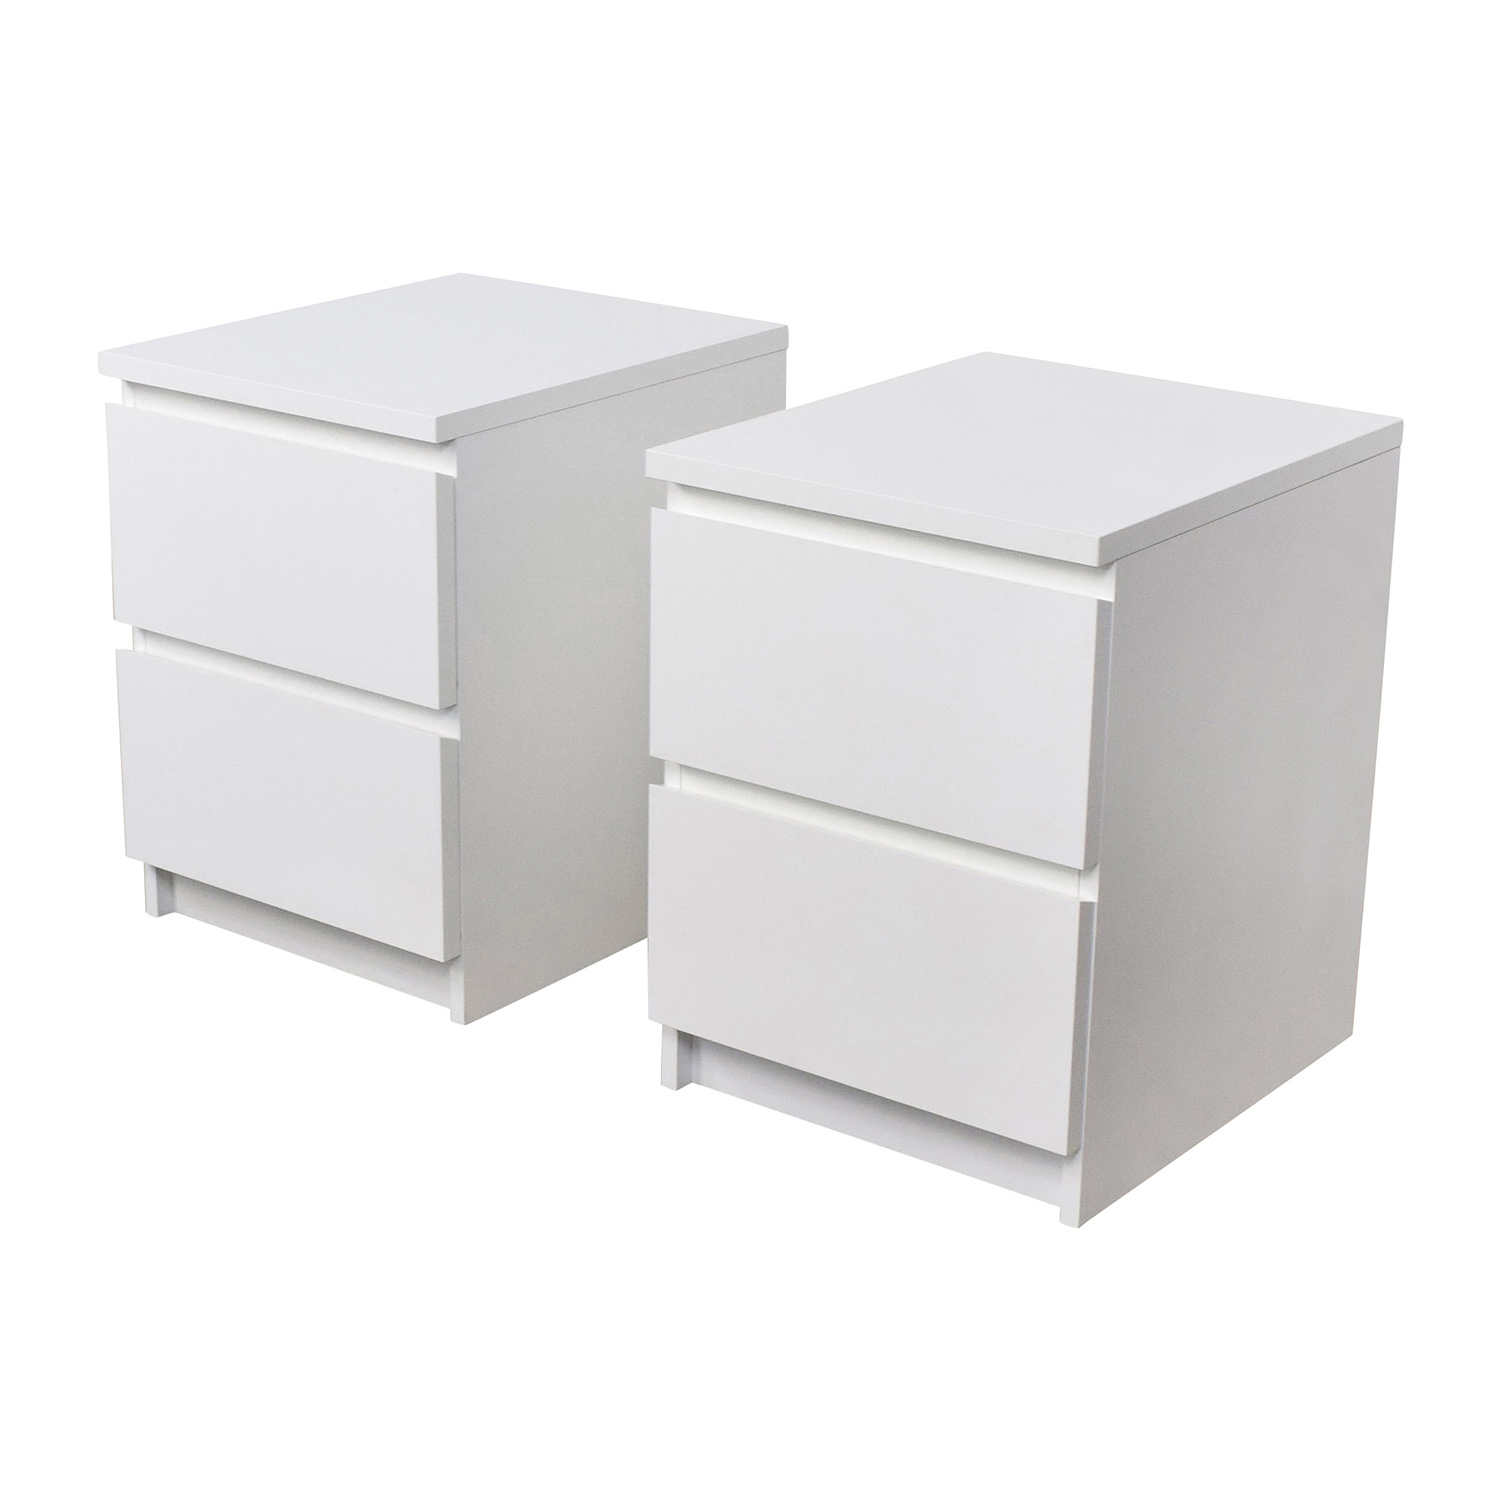 Ikea Malm White Two Drawer End Tables Nj